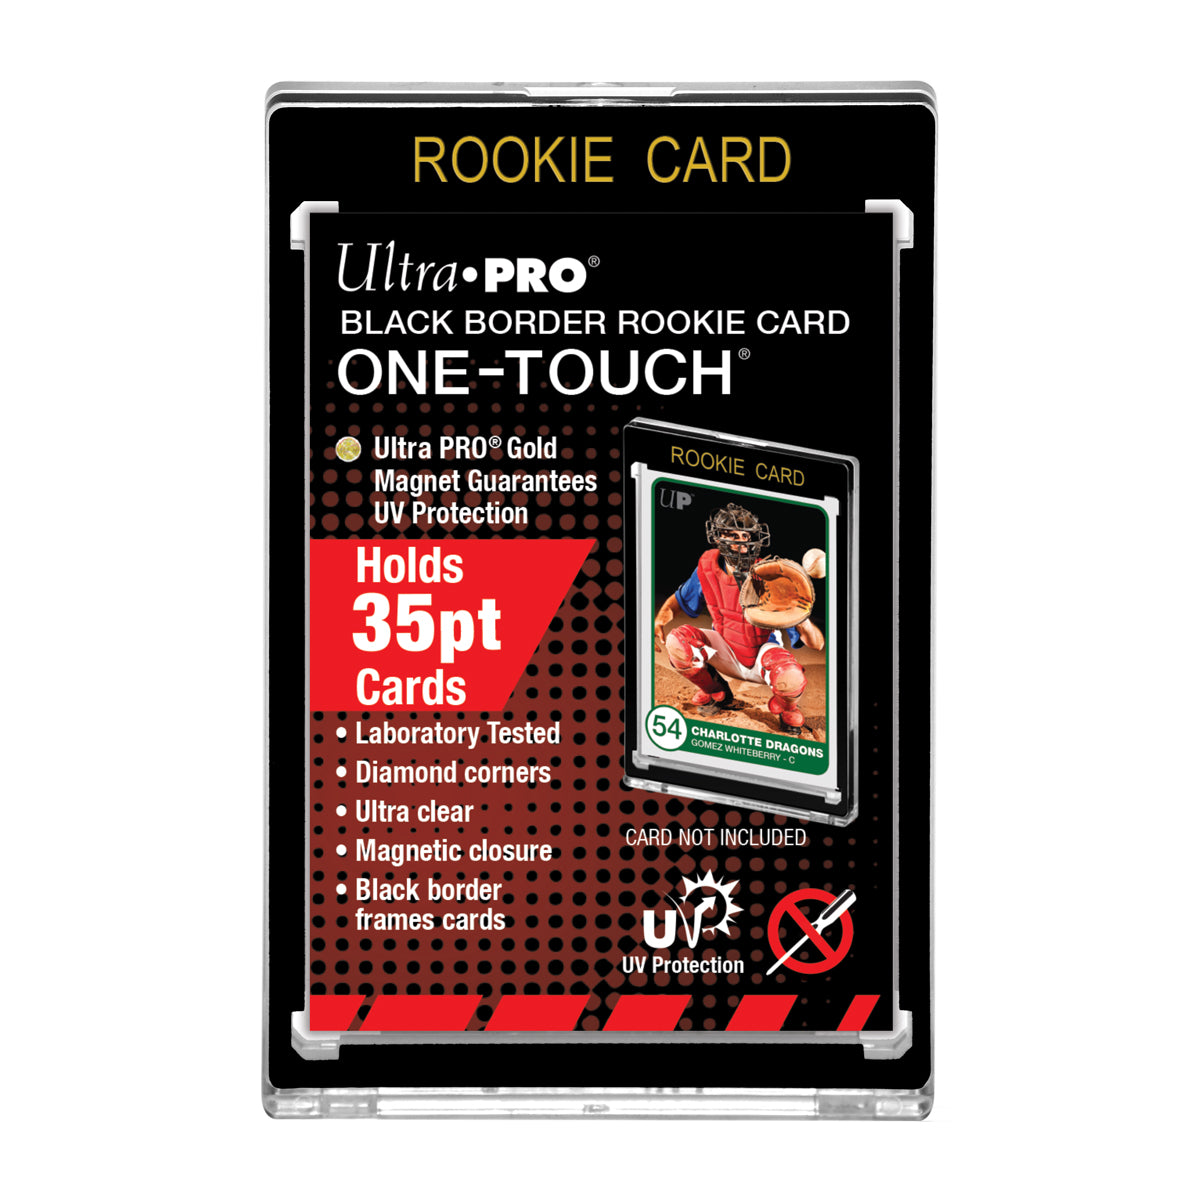 35pt Black Border Rookie Card One Touch Magnetic